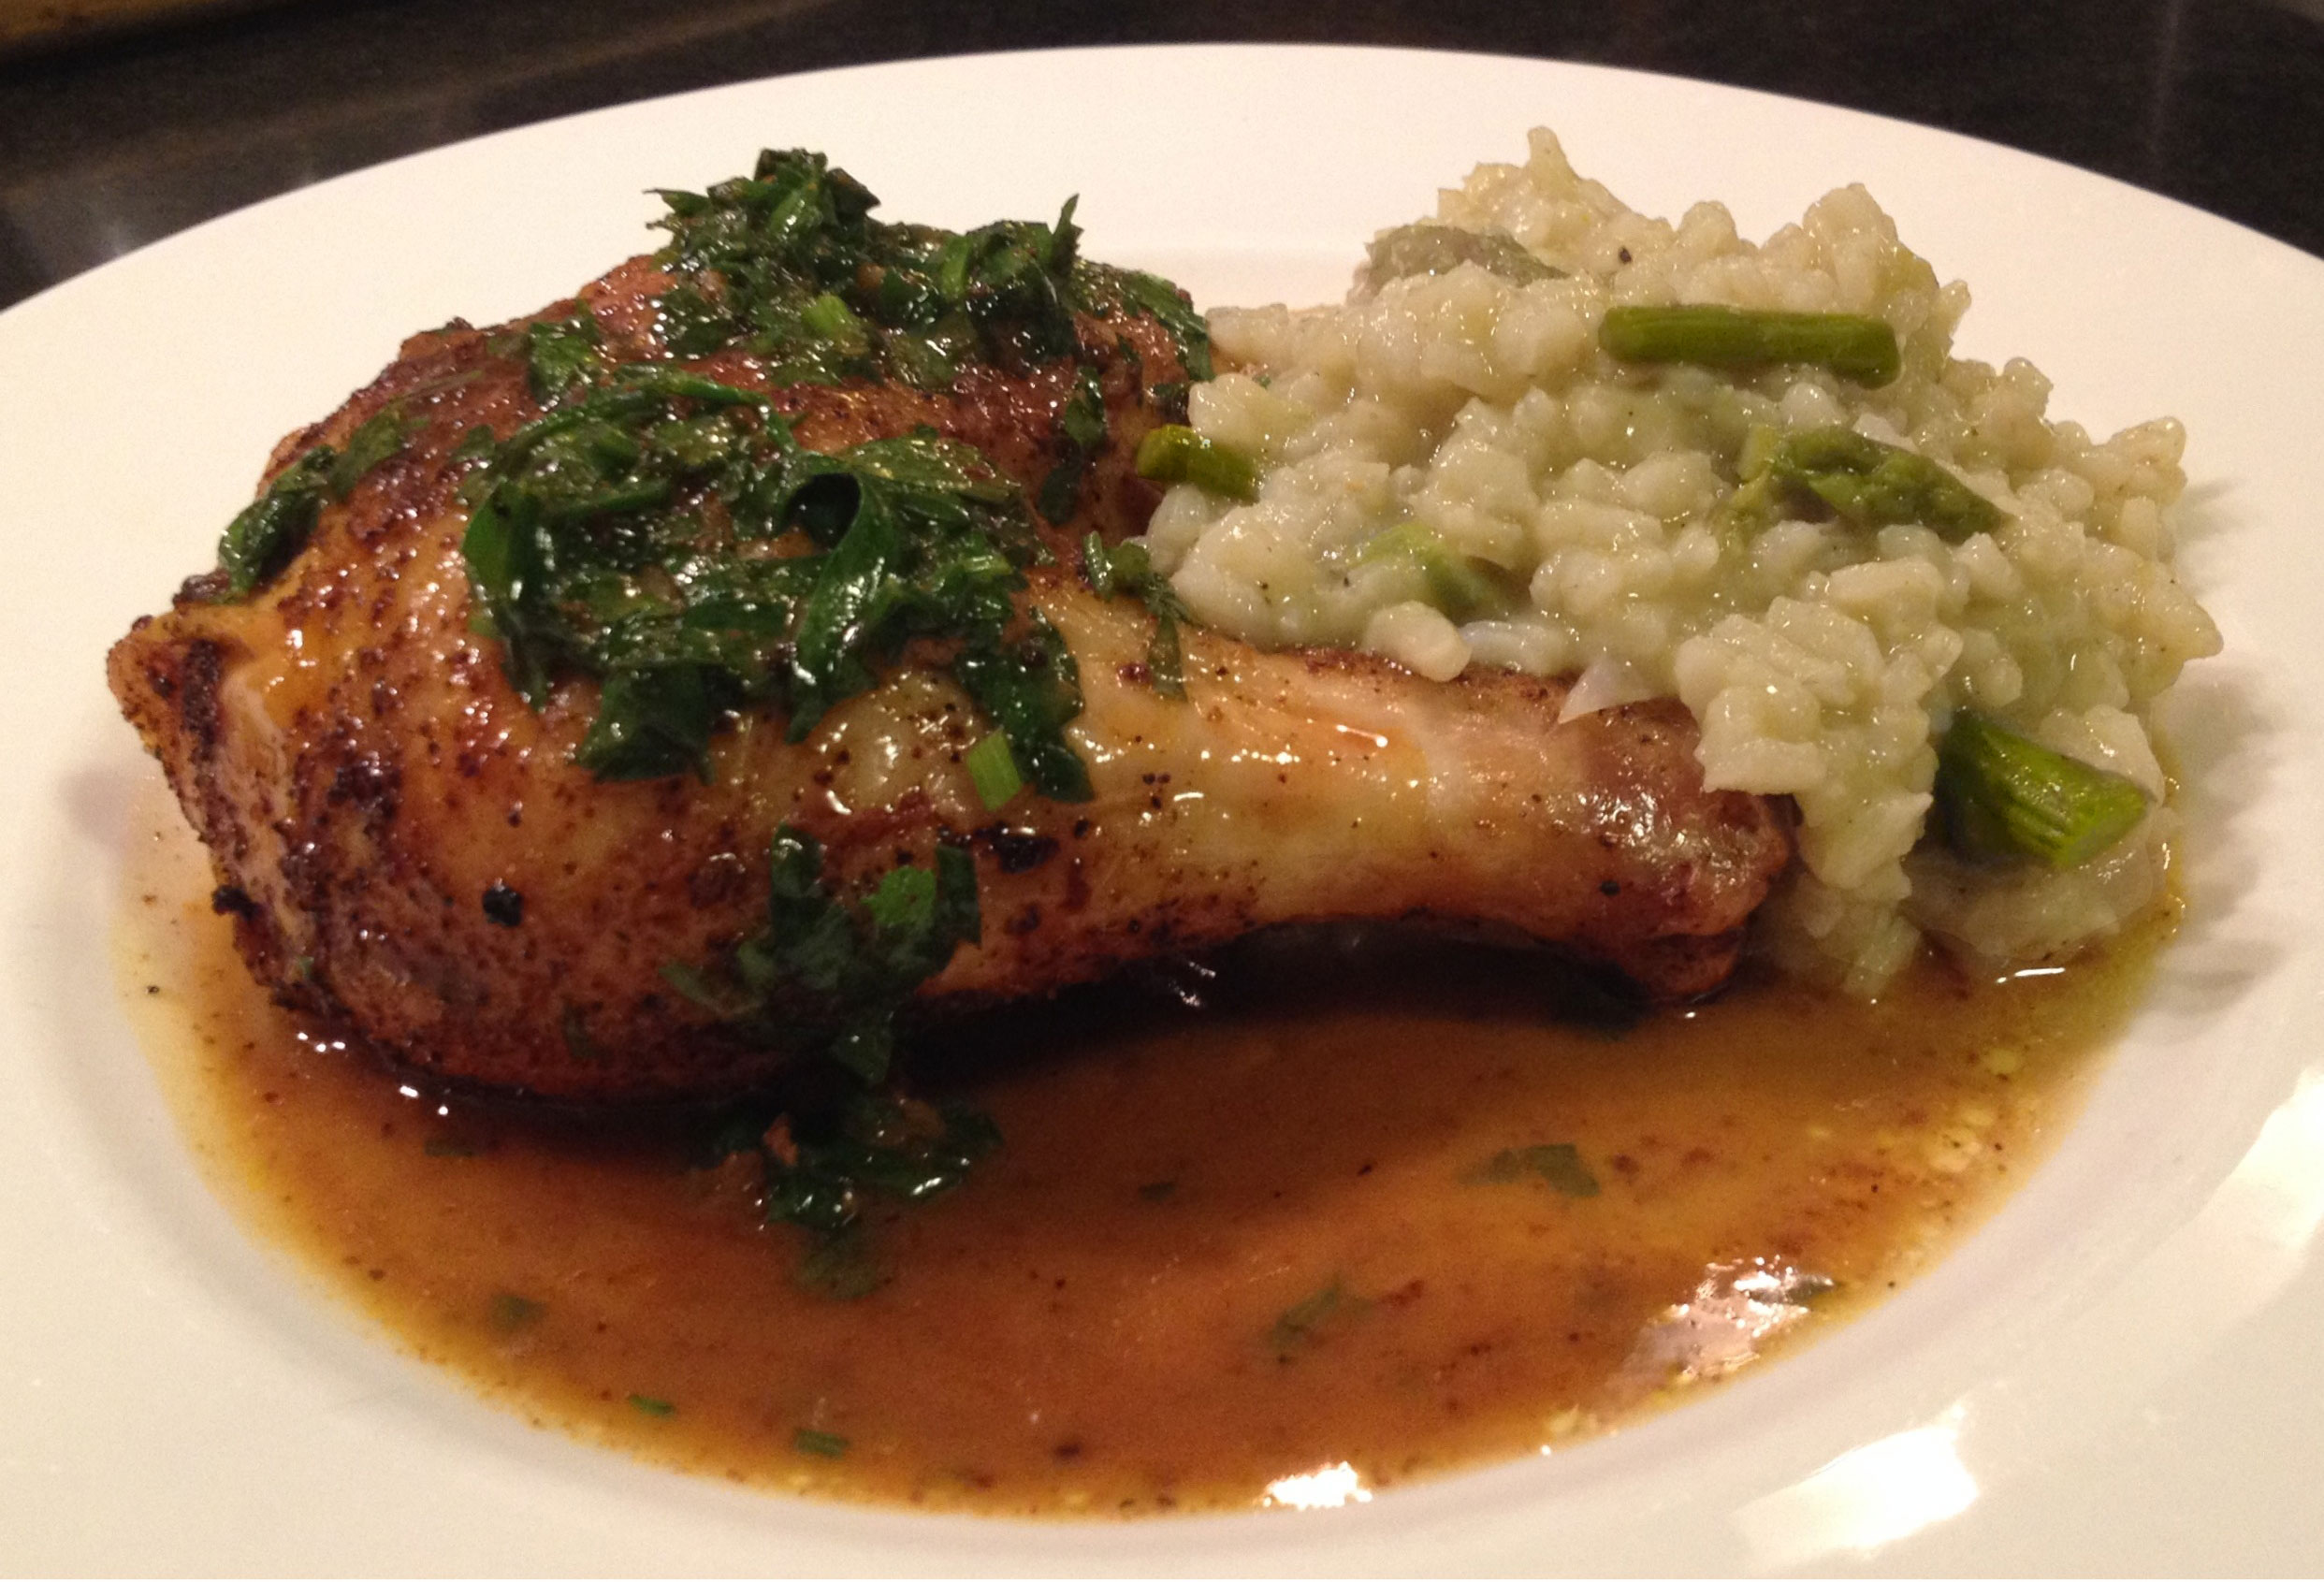 Roast chicken with a spice infused sauce with some asparagus risotto.